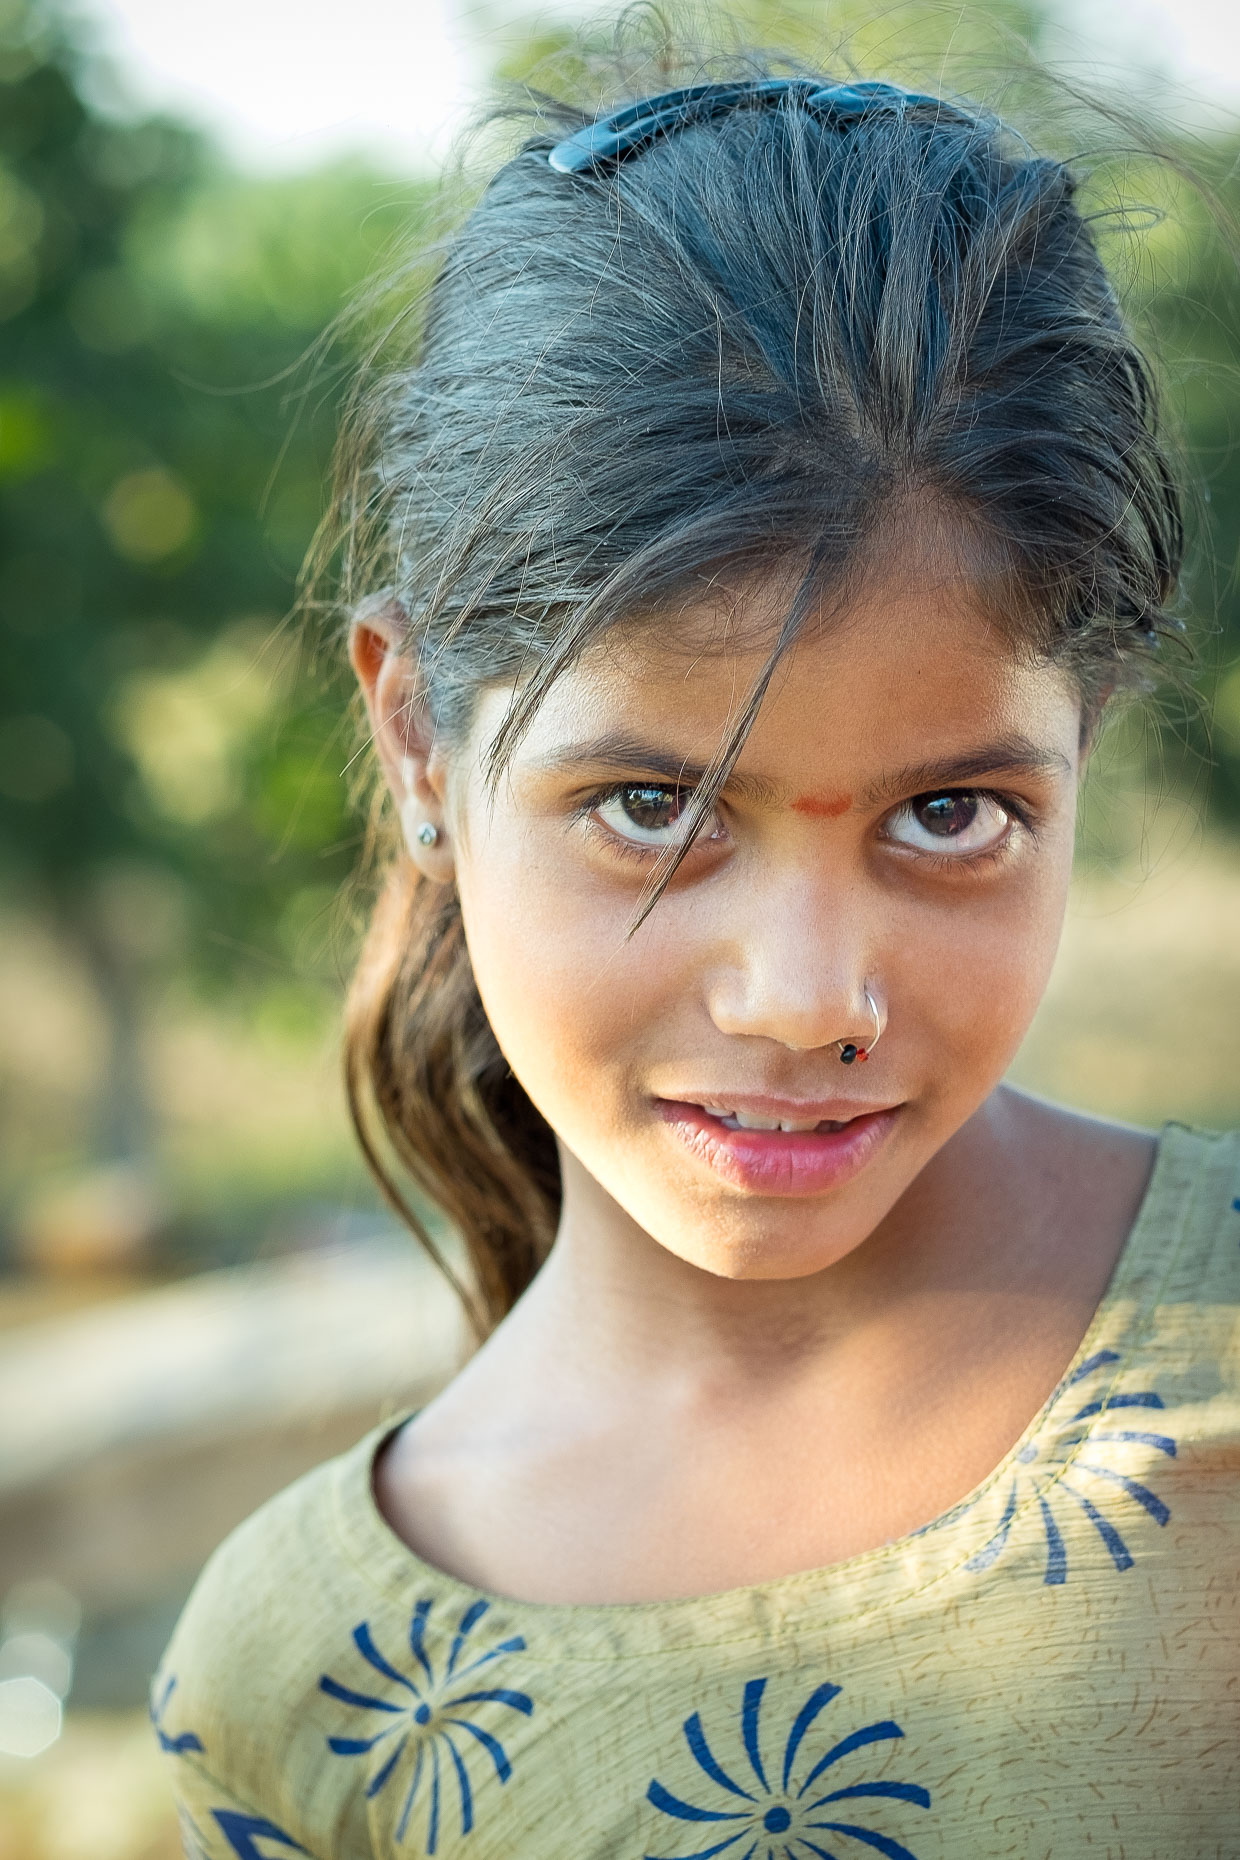 T Young girl, near Udaipur, Rajasthan, India